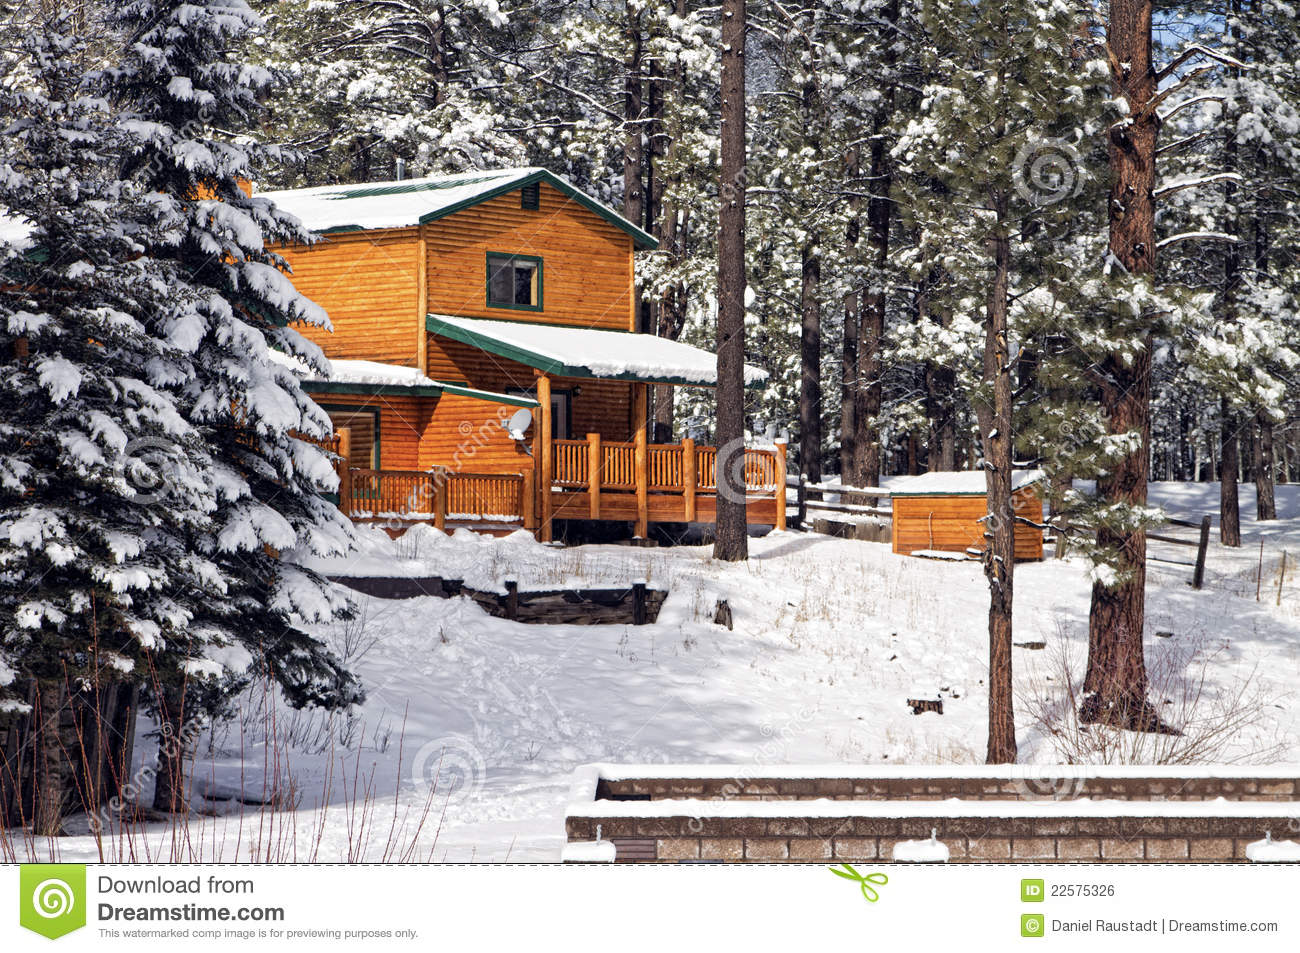 Log cabin in the woods winter - Trendy Modern Log Cabin Home In The Winter Woods Stock Photography With Modern Log Cabin